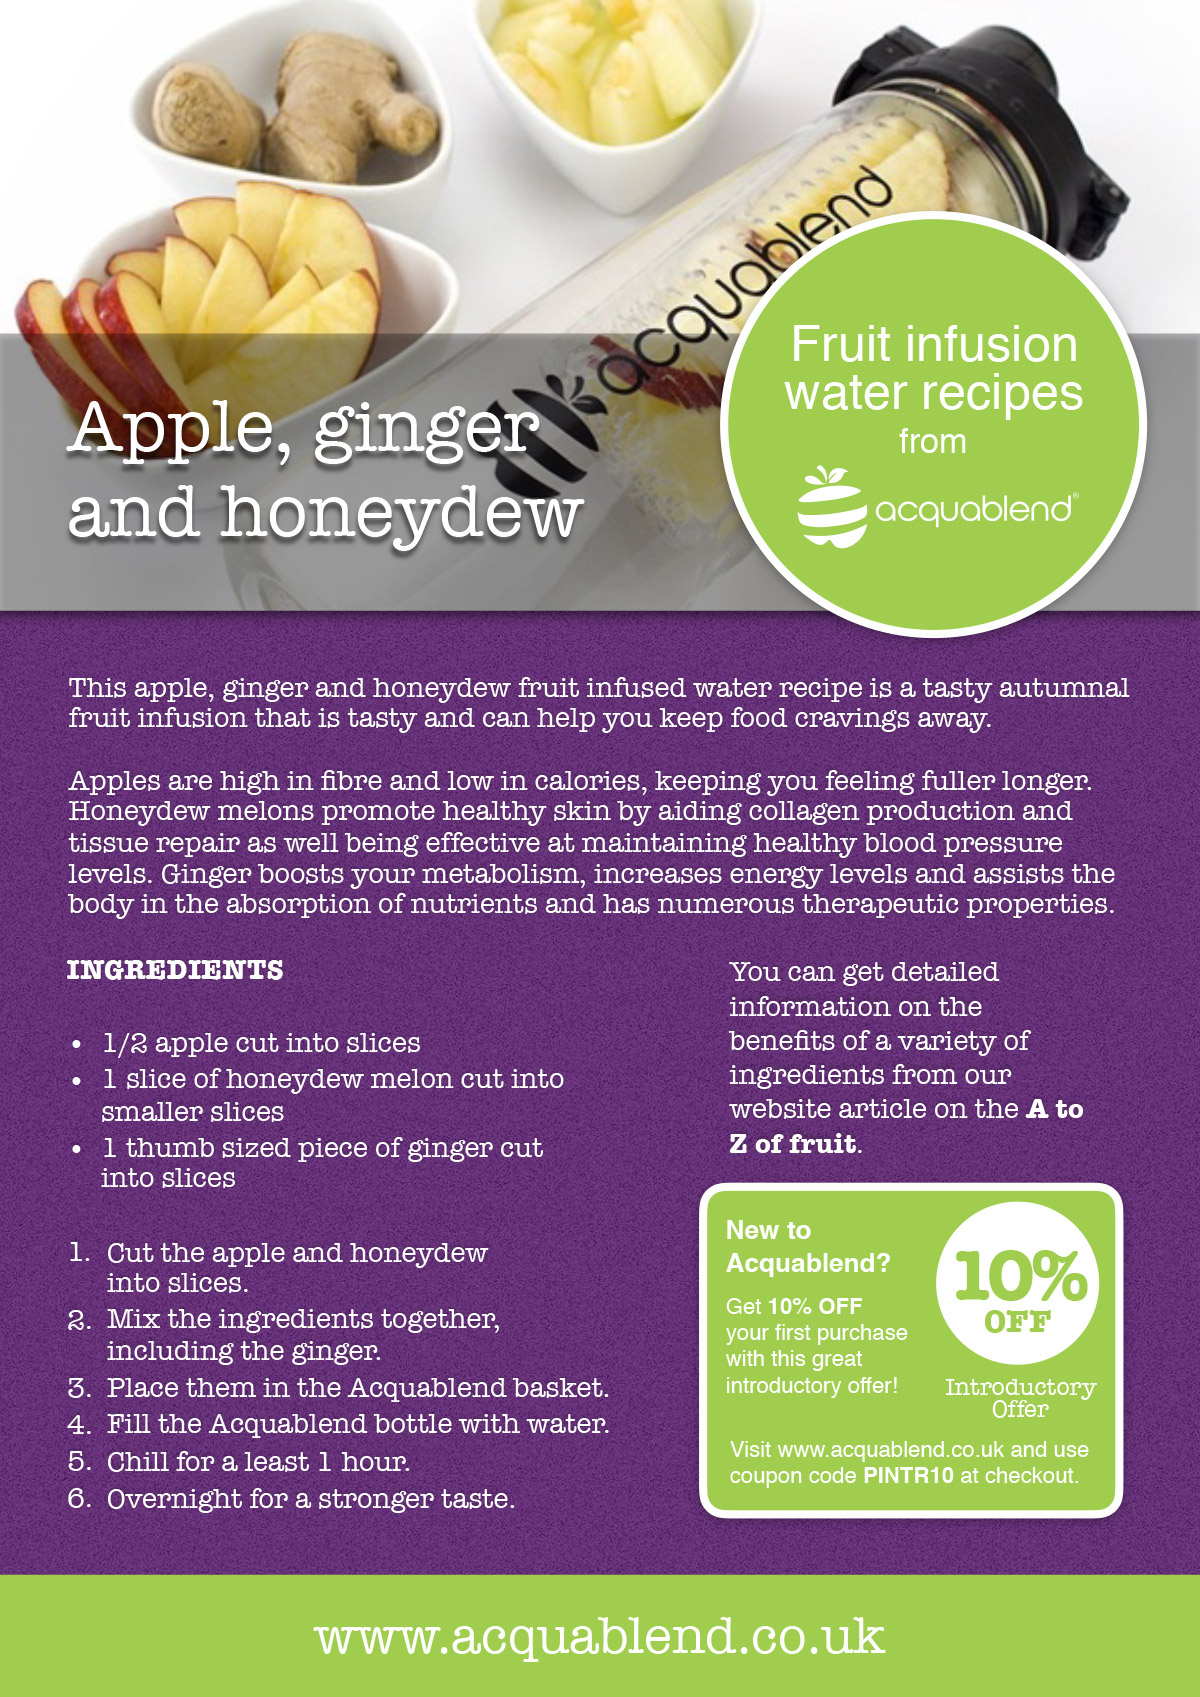 Apple, ginger and honeydew fruit infused water recipe.